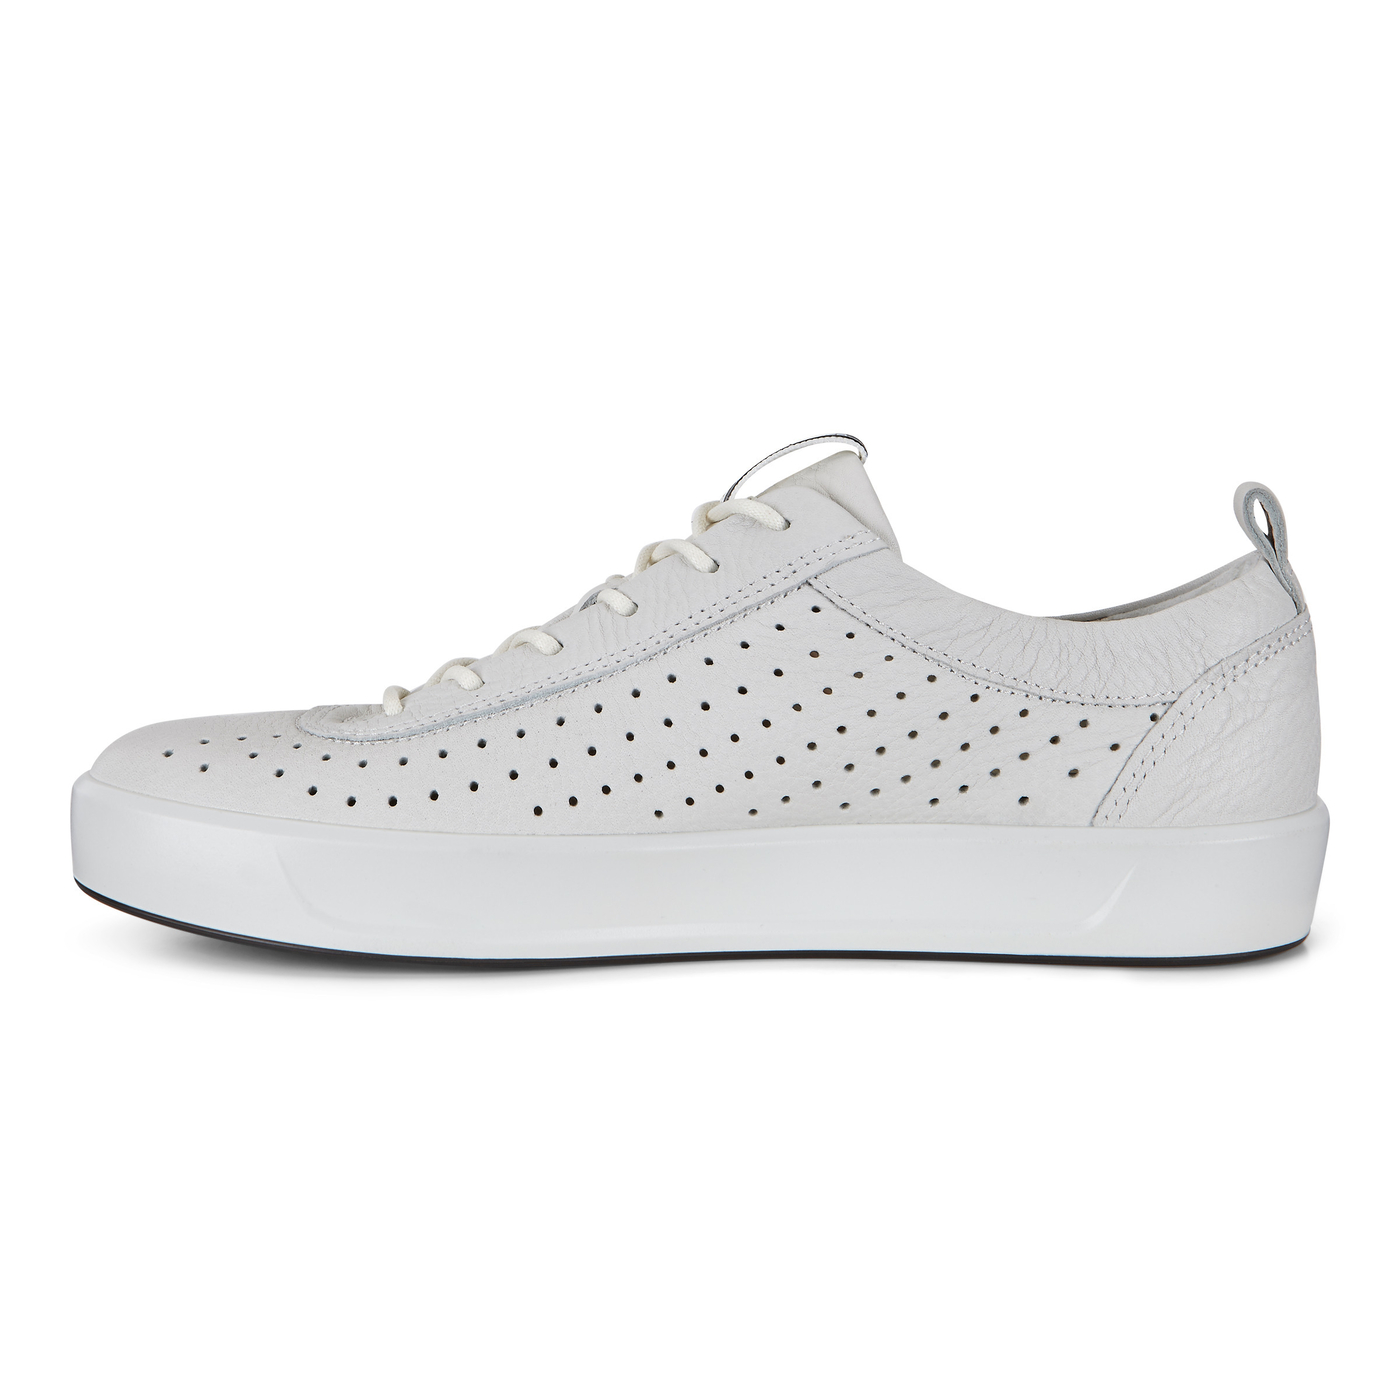 ECCO SOFT 8 LADIES Shoe